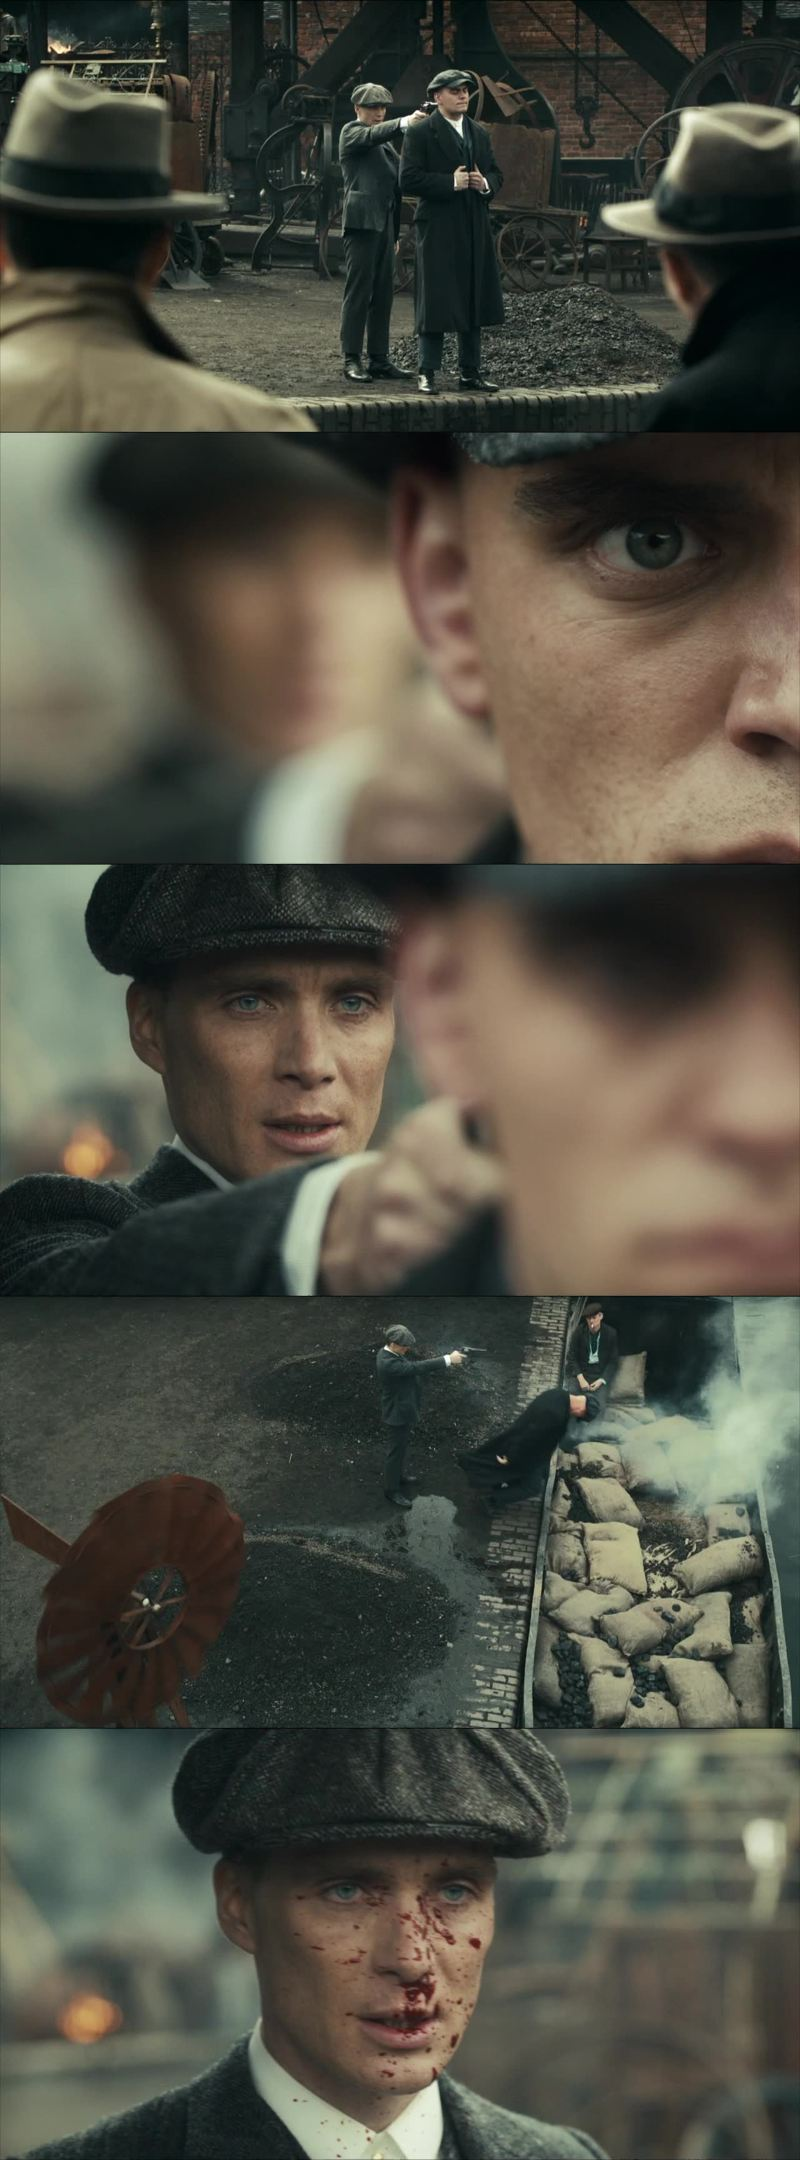 This was a promising Pilot. The photography of this series is amazing, it really set us in this 1919 mood. The acting is excellent.   The story was good, but it felt like a big prologue, setting the tone of what's to come. We can see Tommy being ambitious, having the guns for himself and faking that death at the end. Also there was this Inspector and that doble agent Grace. It seems interesting, made me wanna watch more.